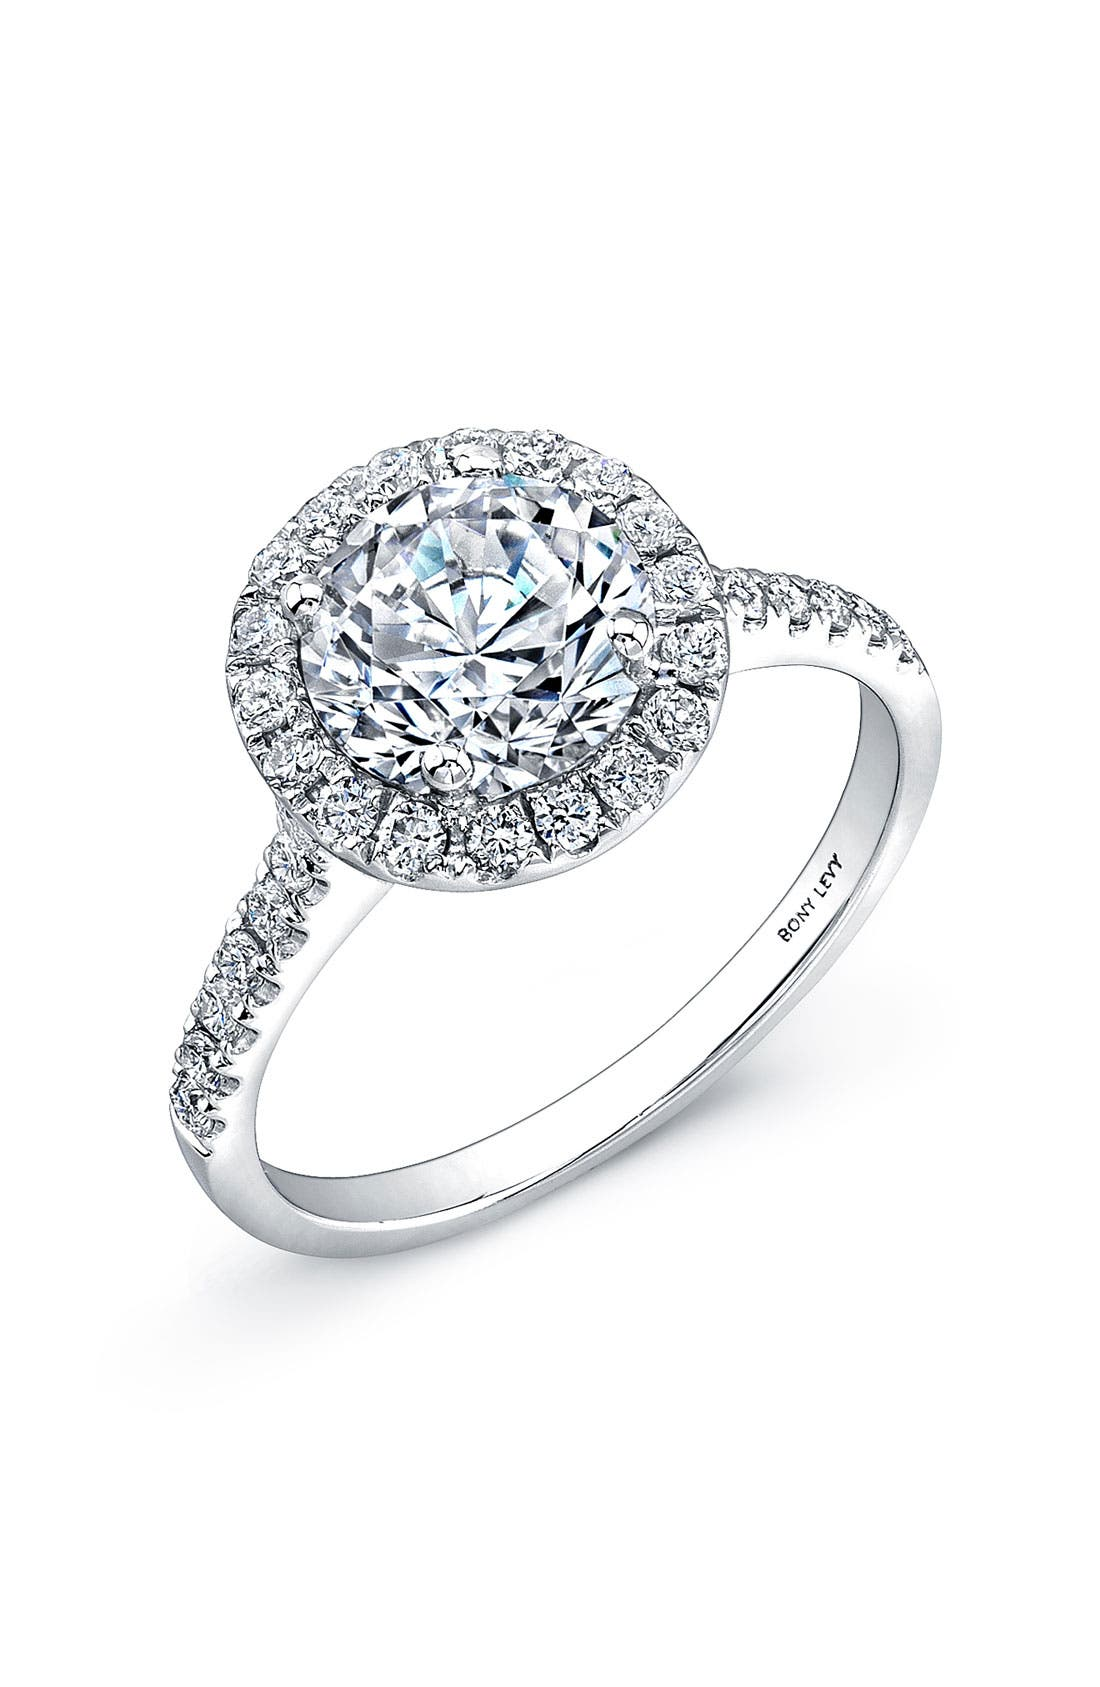 Alternate Image 1 Selected - Bony Levy Pavé Diamond Leaf Engagement Ring Setting (Nordstrom Exclusive)